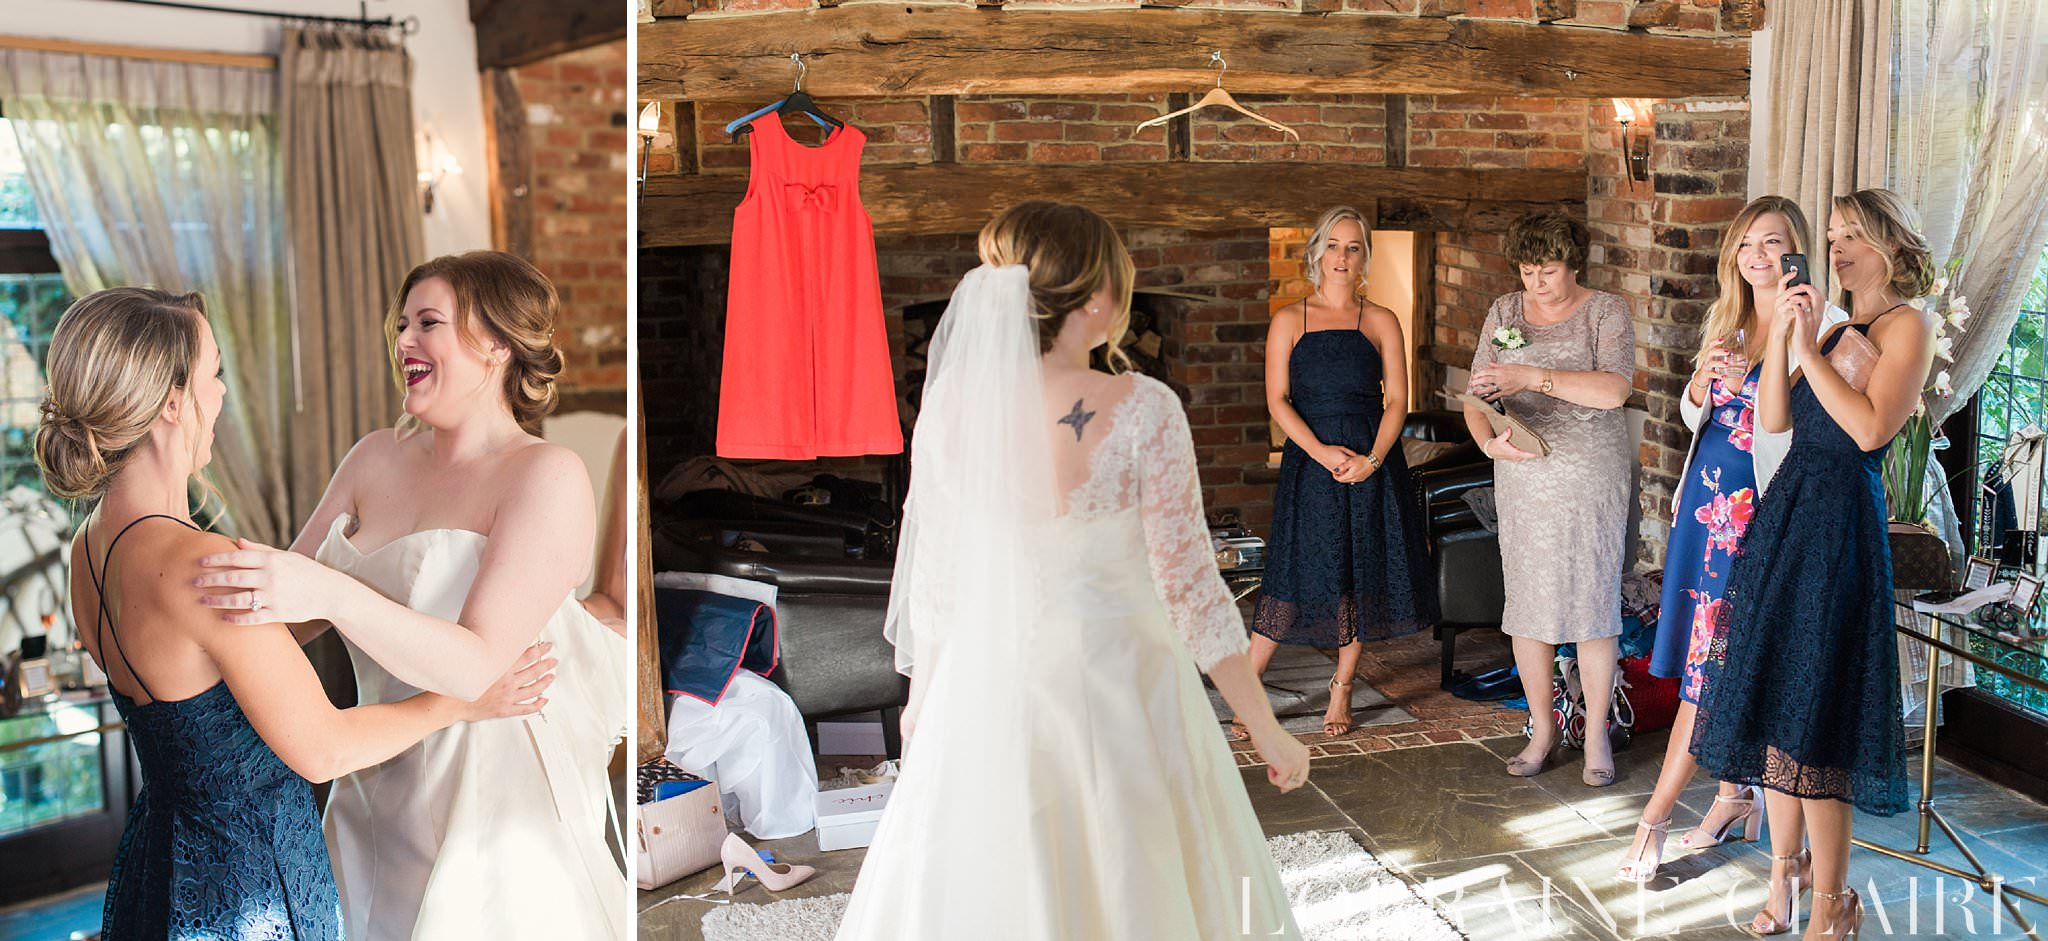 Rivervale Barn Wedding Photography_0006